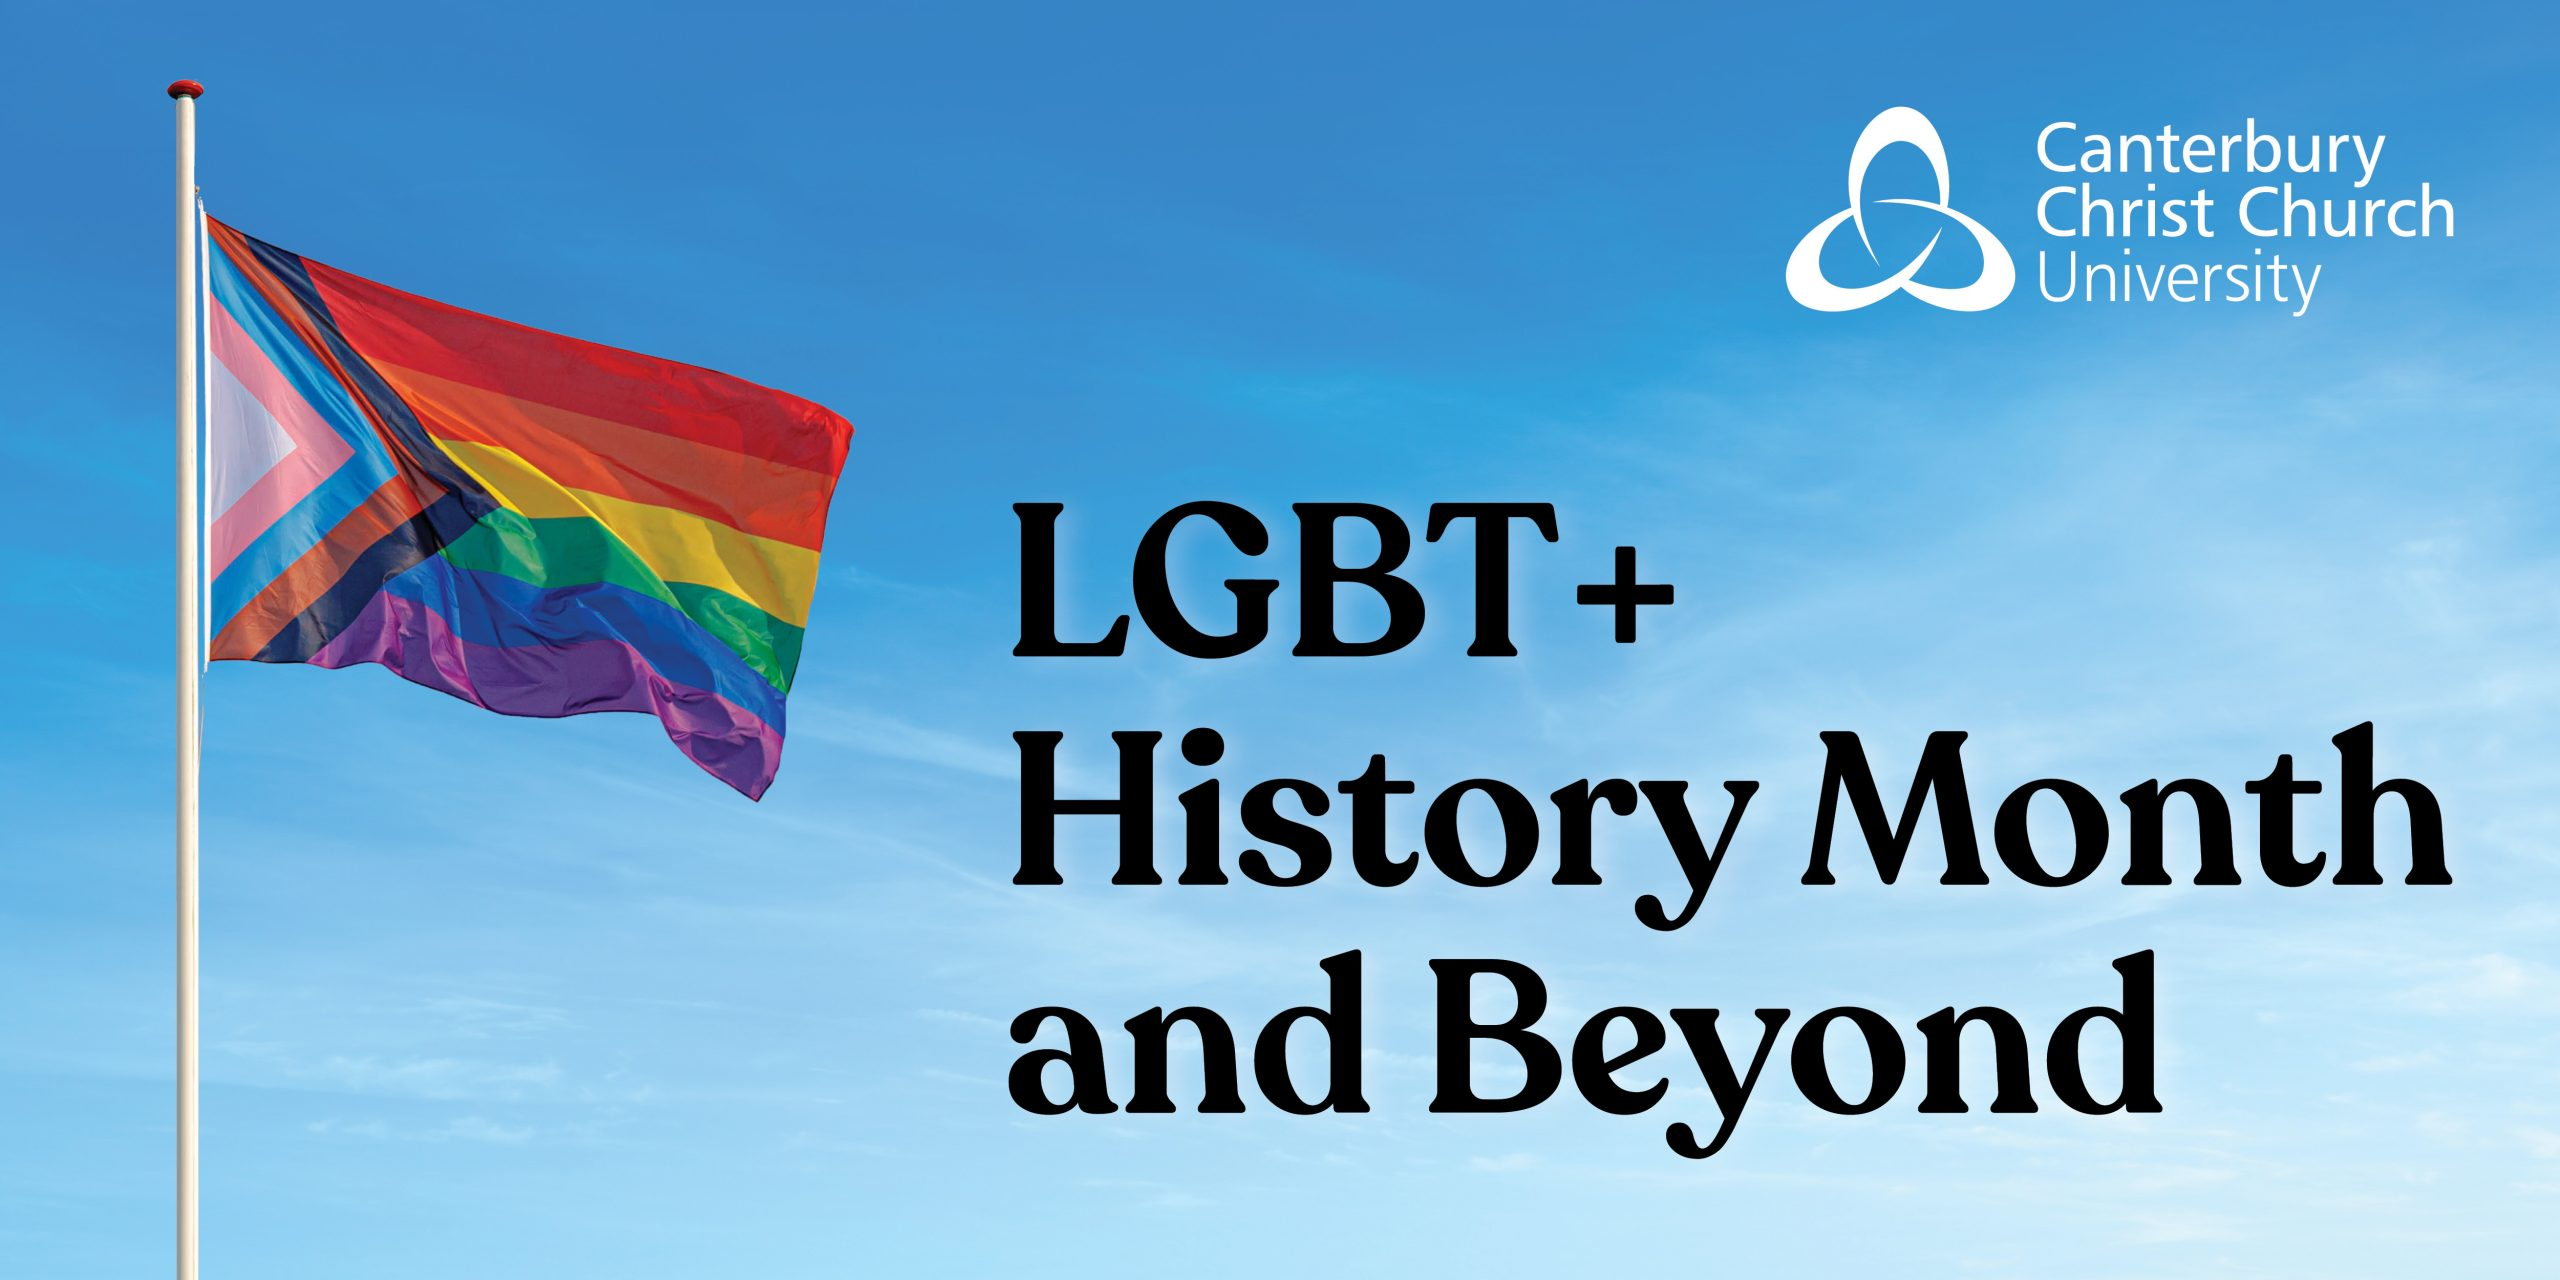 Reasons why LGBT+ History Month is so important